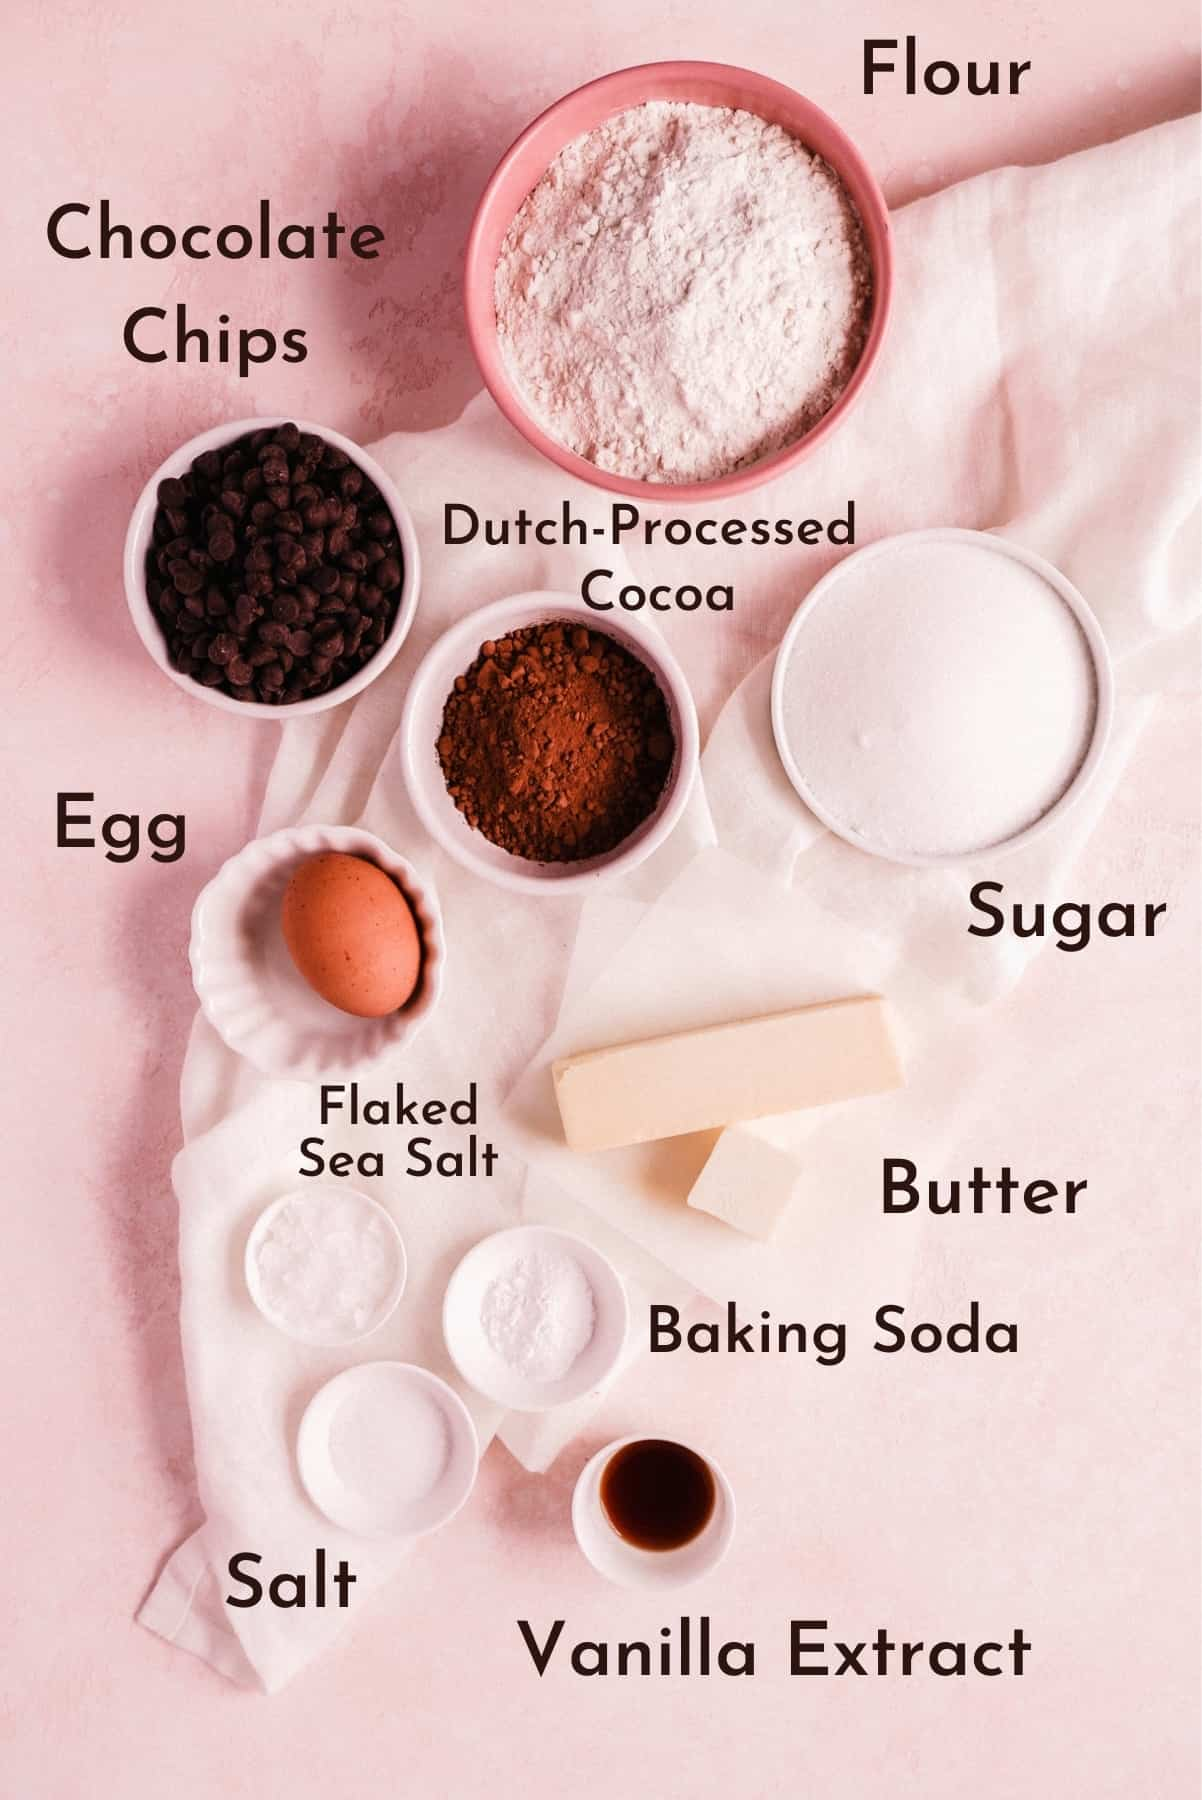 labeled ingredients for this recipe in their own bowls on a pink background